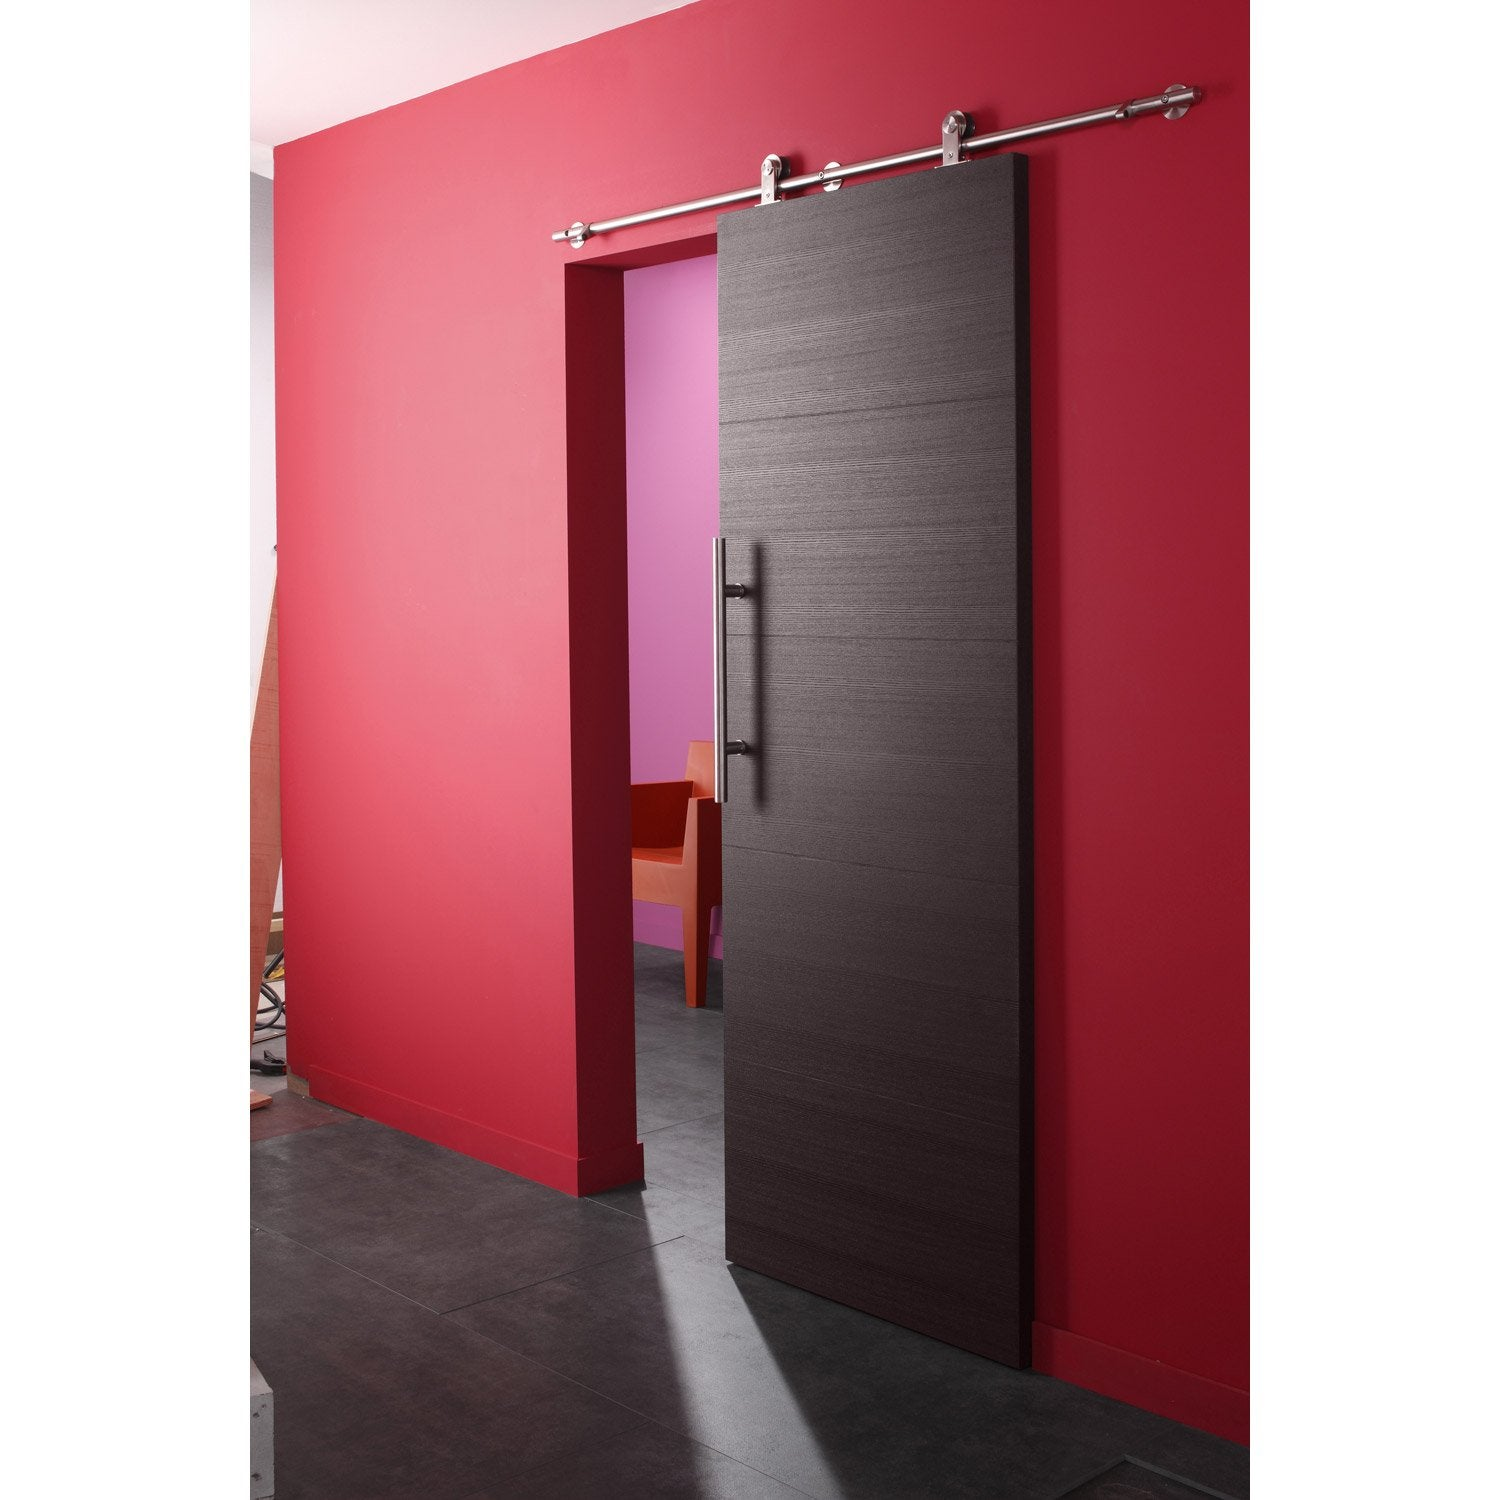 Ensemble porte coulissante tokyo fr ne avec le rail techno for Porte coulissante interieur leroy merlin